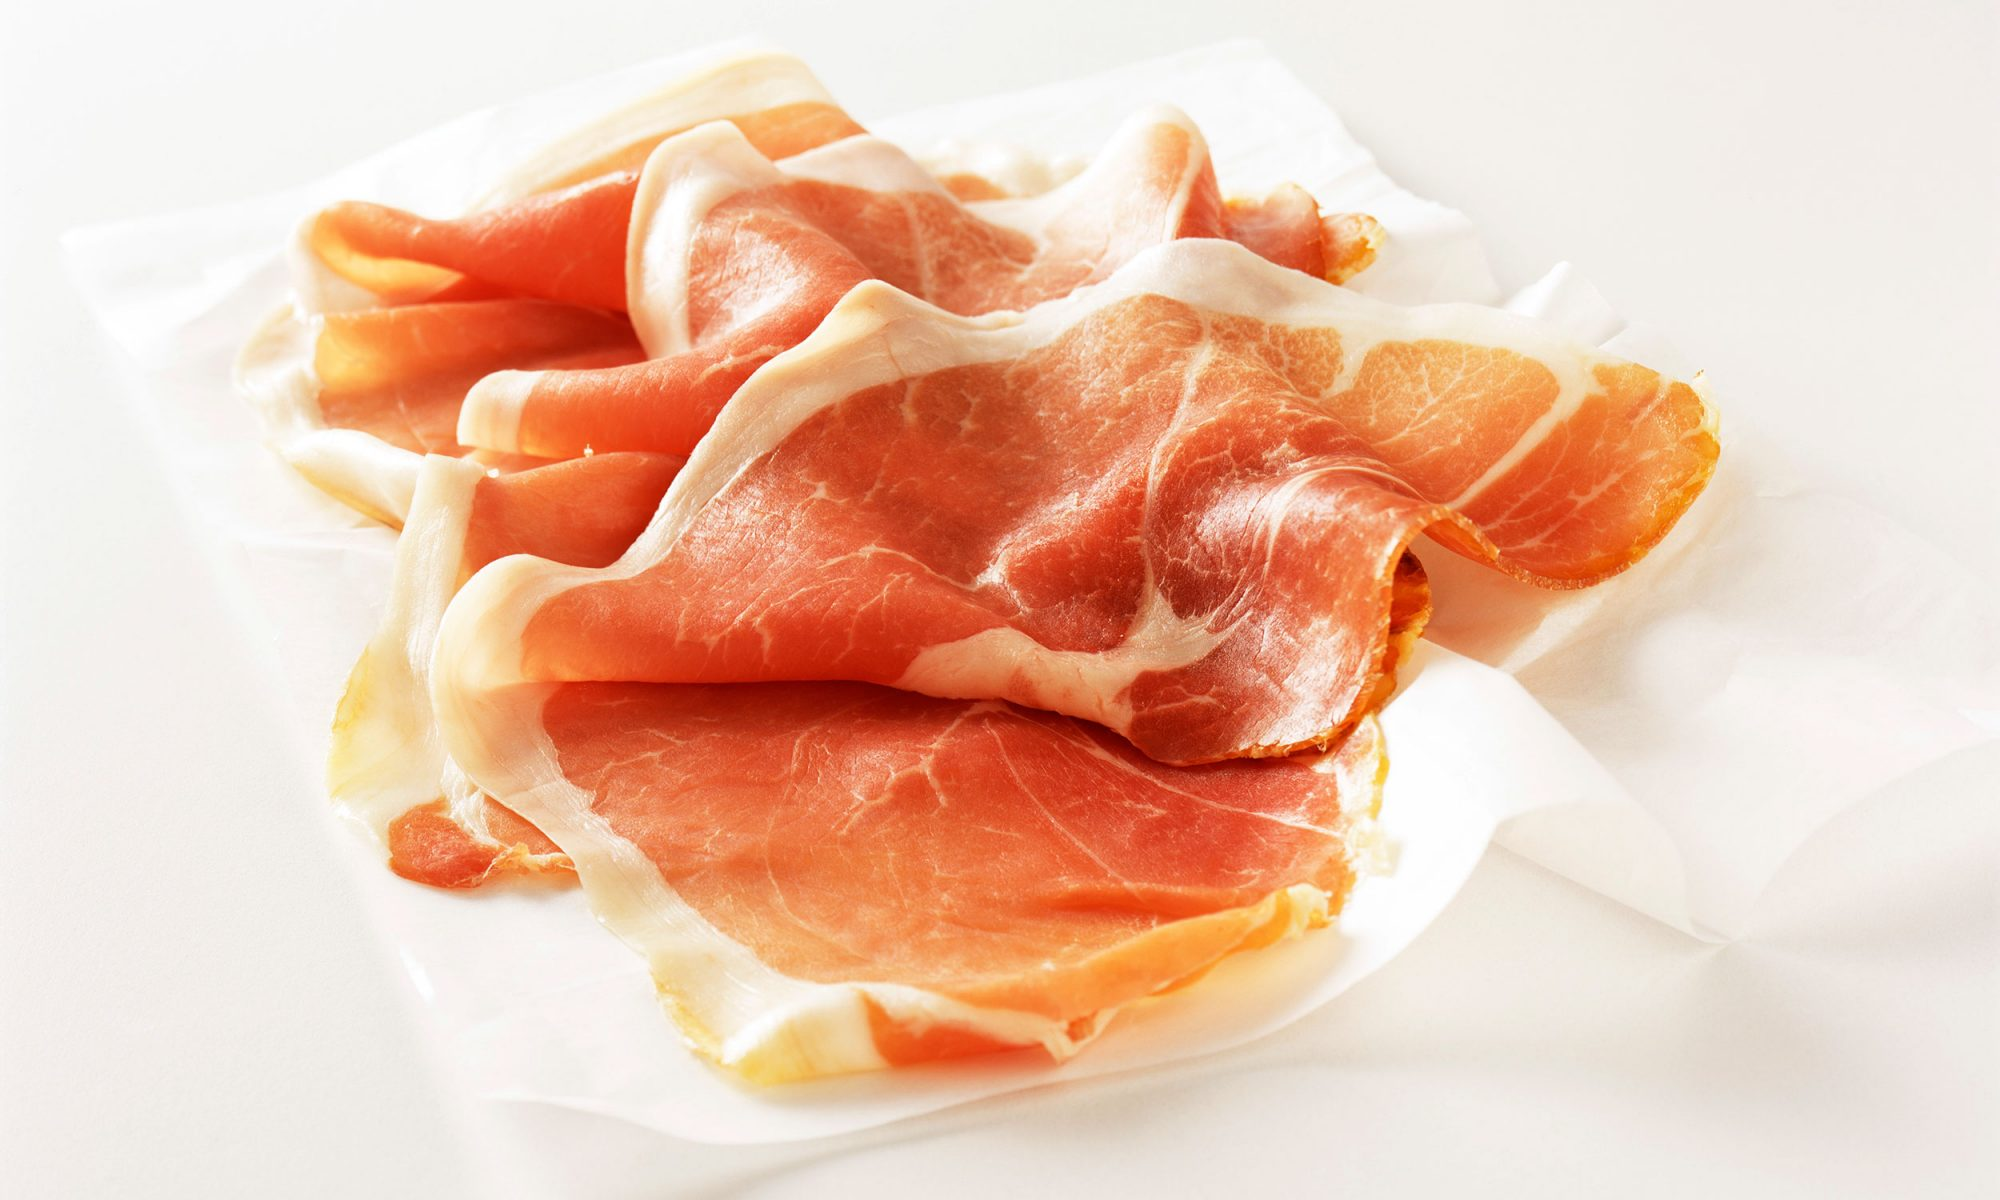 EC: How to Store Prosciutto So It Doesn't Dry Out